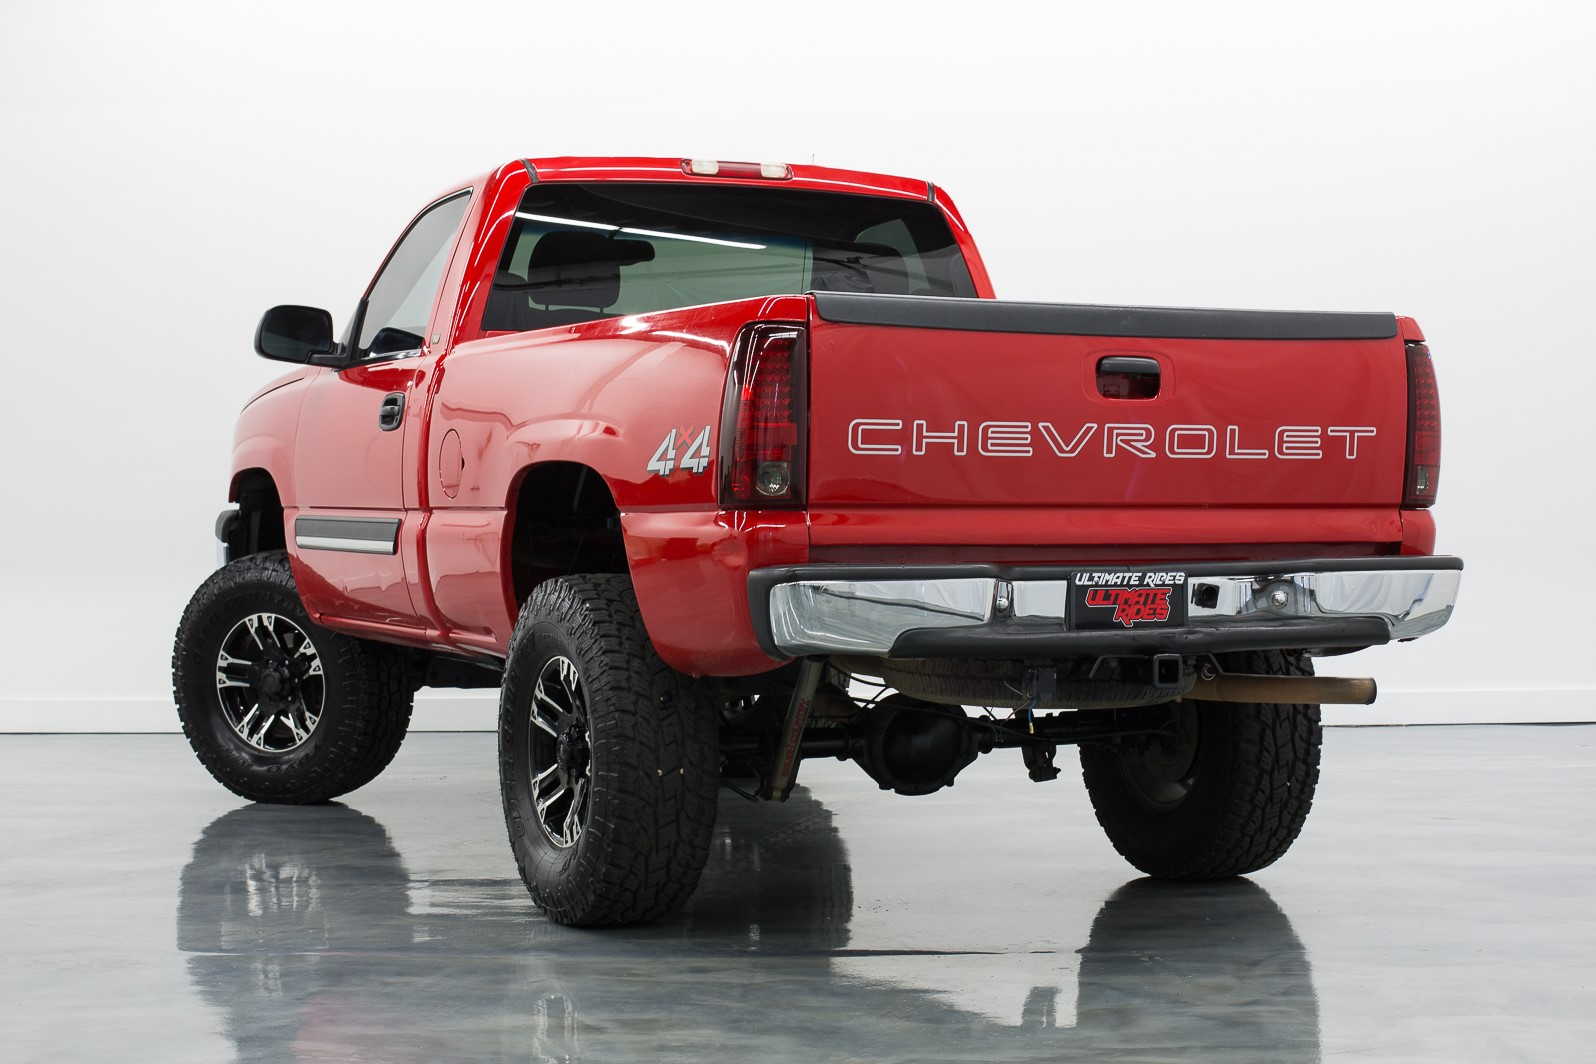 Silverado 2003 chevrolet silverado : 2003 Chevrolet Silverado 1500 Standard Cab 4X4 | Ultimate Rides